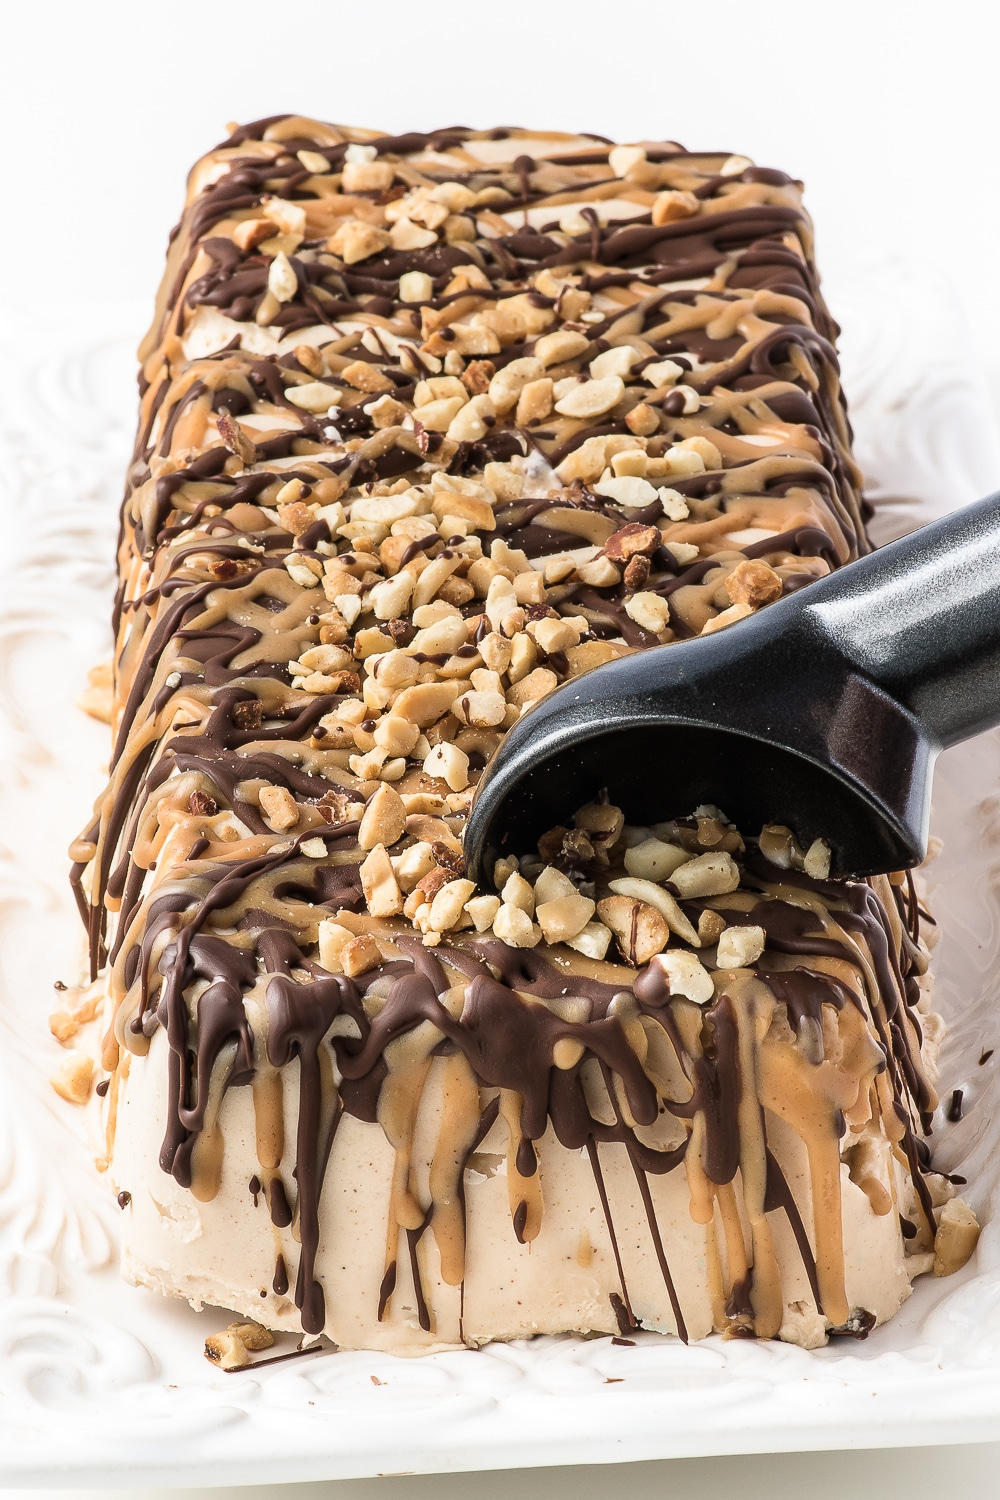 loaf shaped ice cream cake with chocolate and peanut butter drizzle